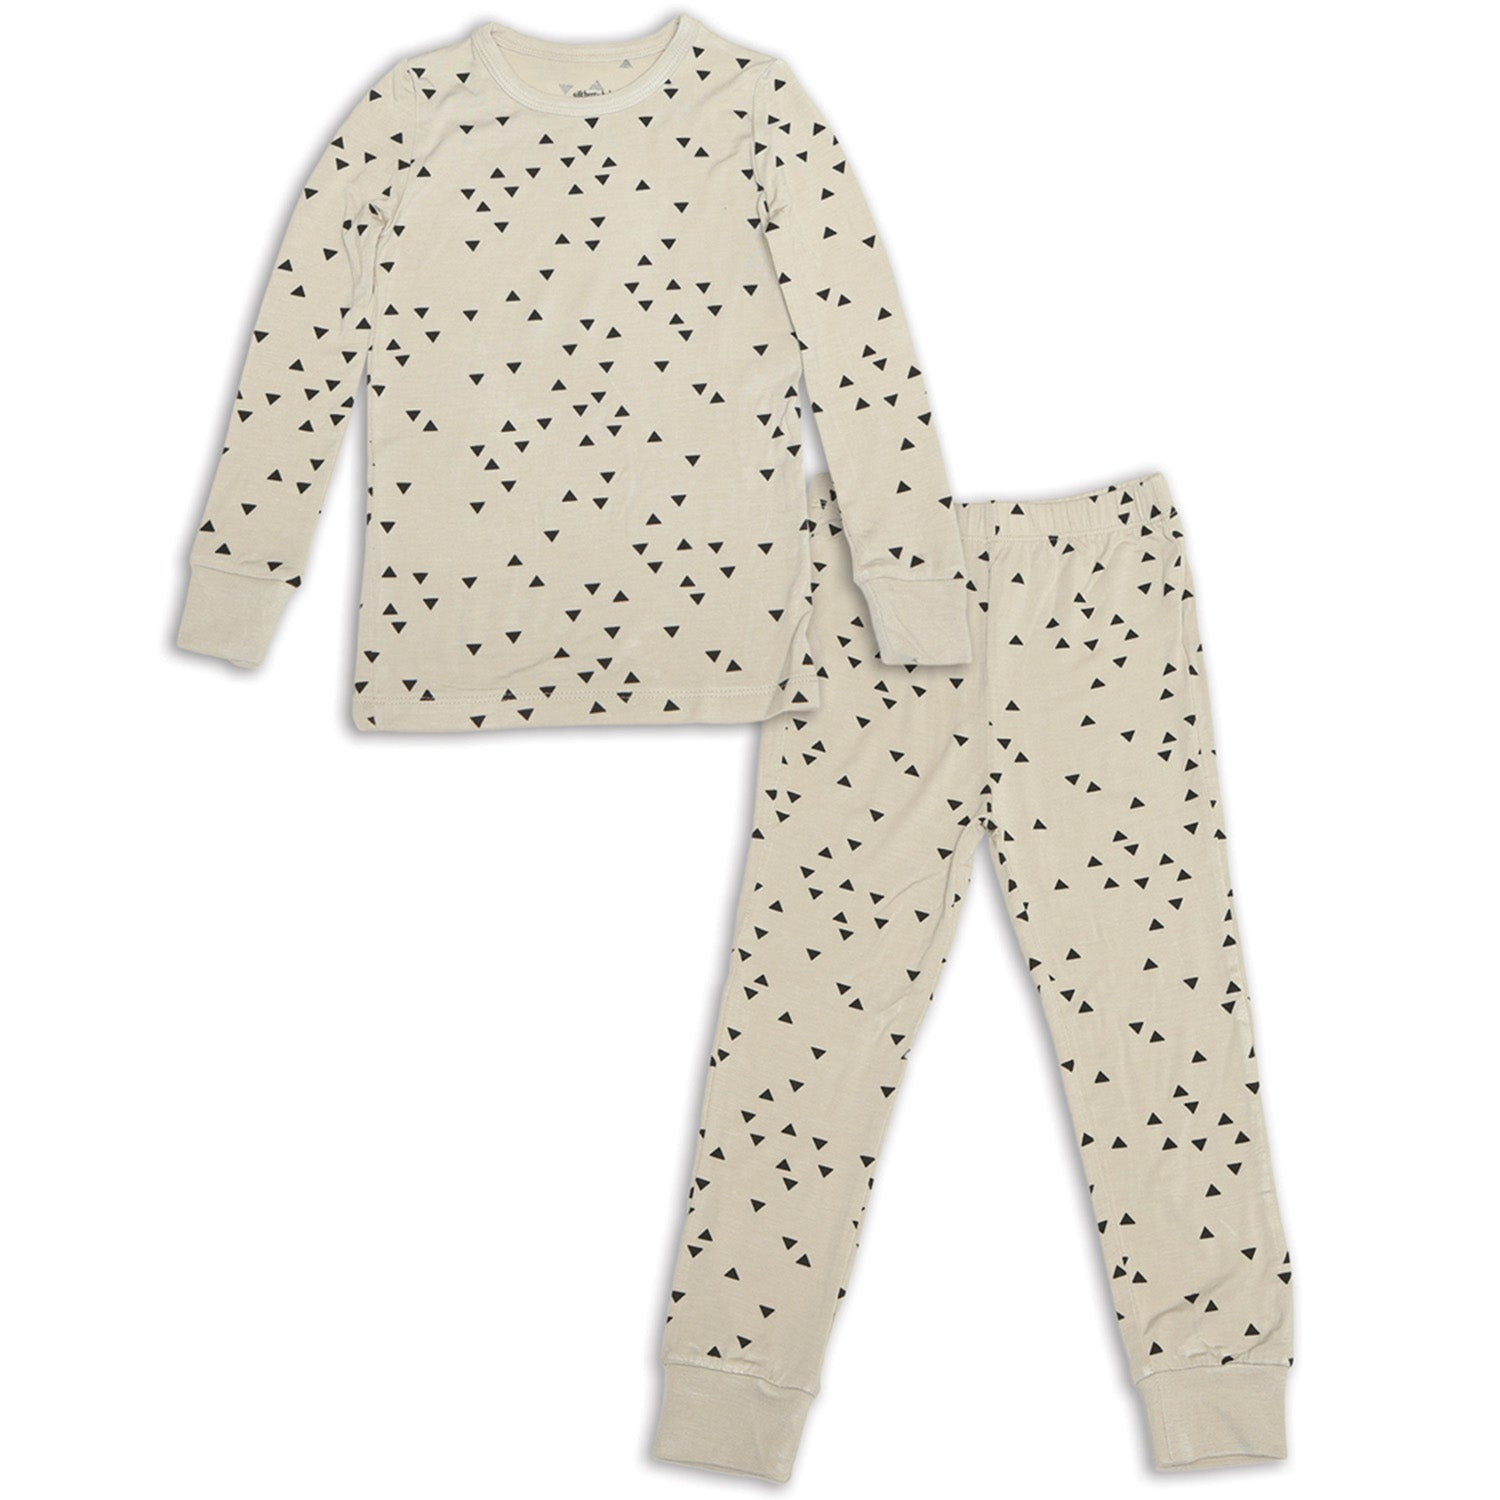 Silkberry Baby Bamboo Long Sleeve Pajama Set - Apex